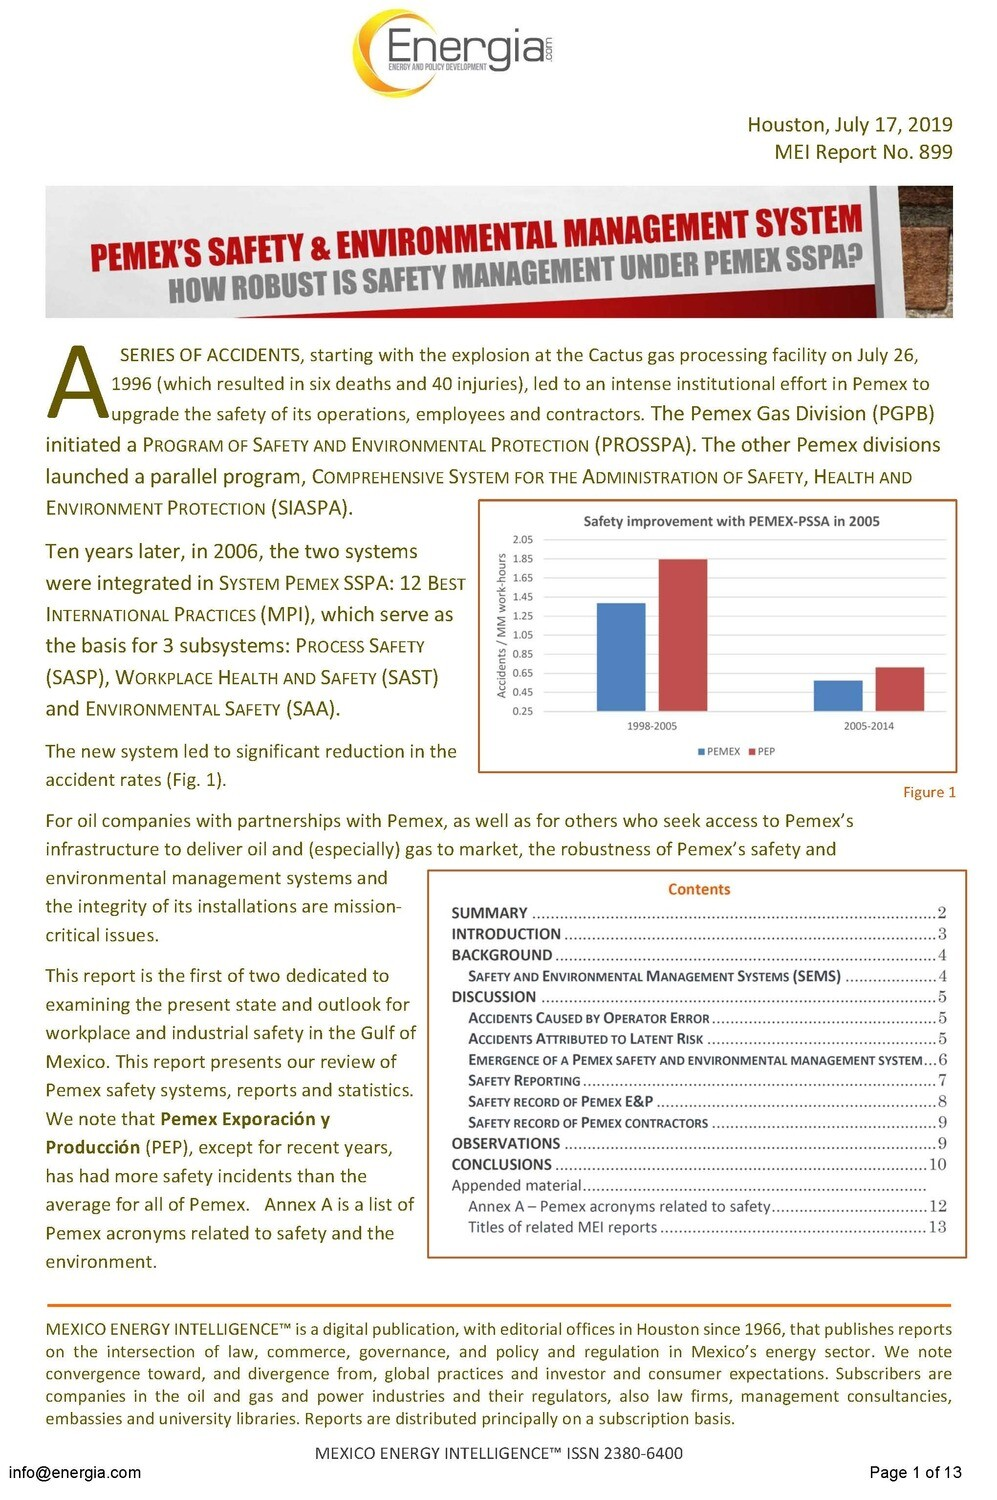 Pemex's Safety and Environmental System (SEMS): How robust?